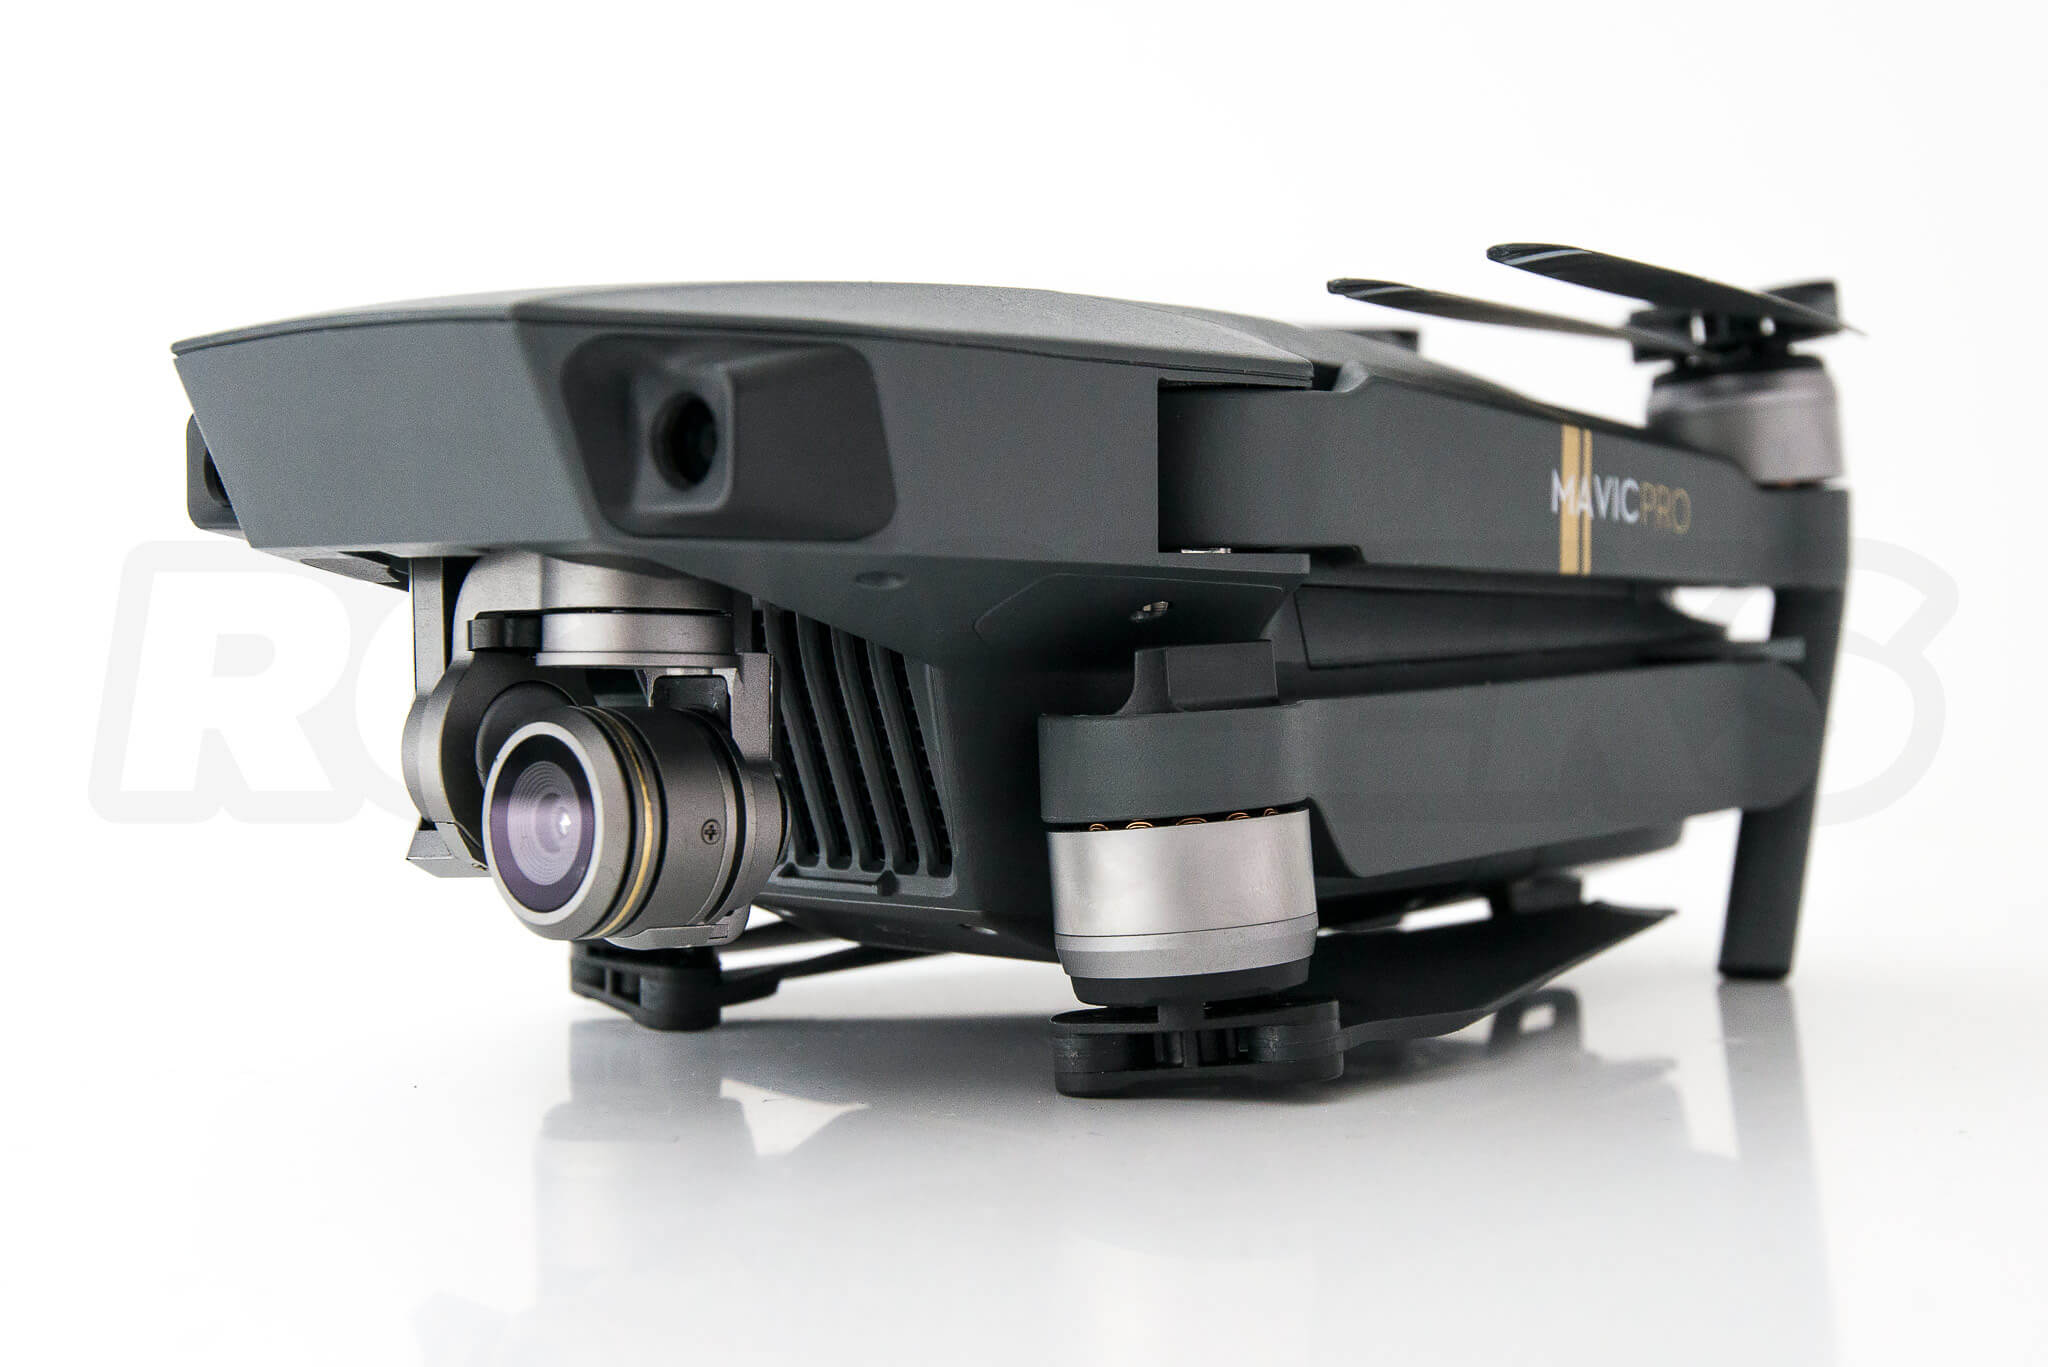 DJI-Mavic-pro-first-hands-on_drone-collapsed-arms-and-camera